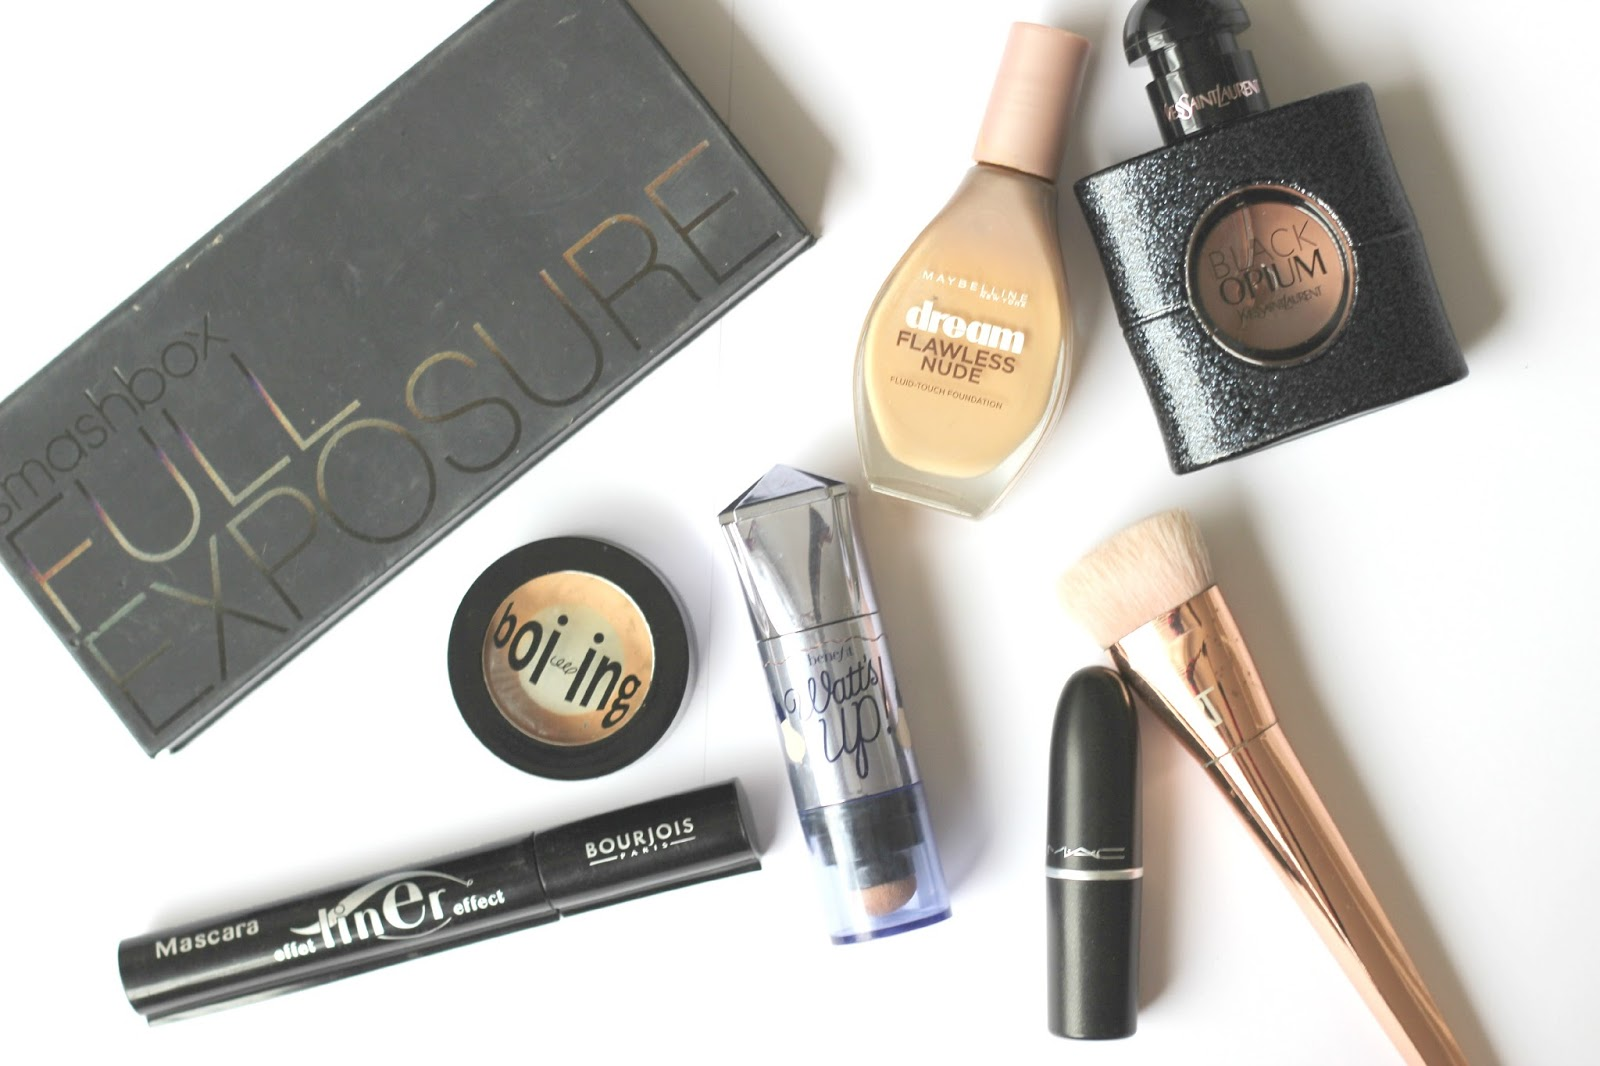 Favourite products of 2015